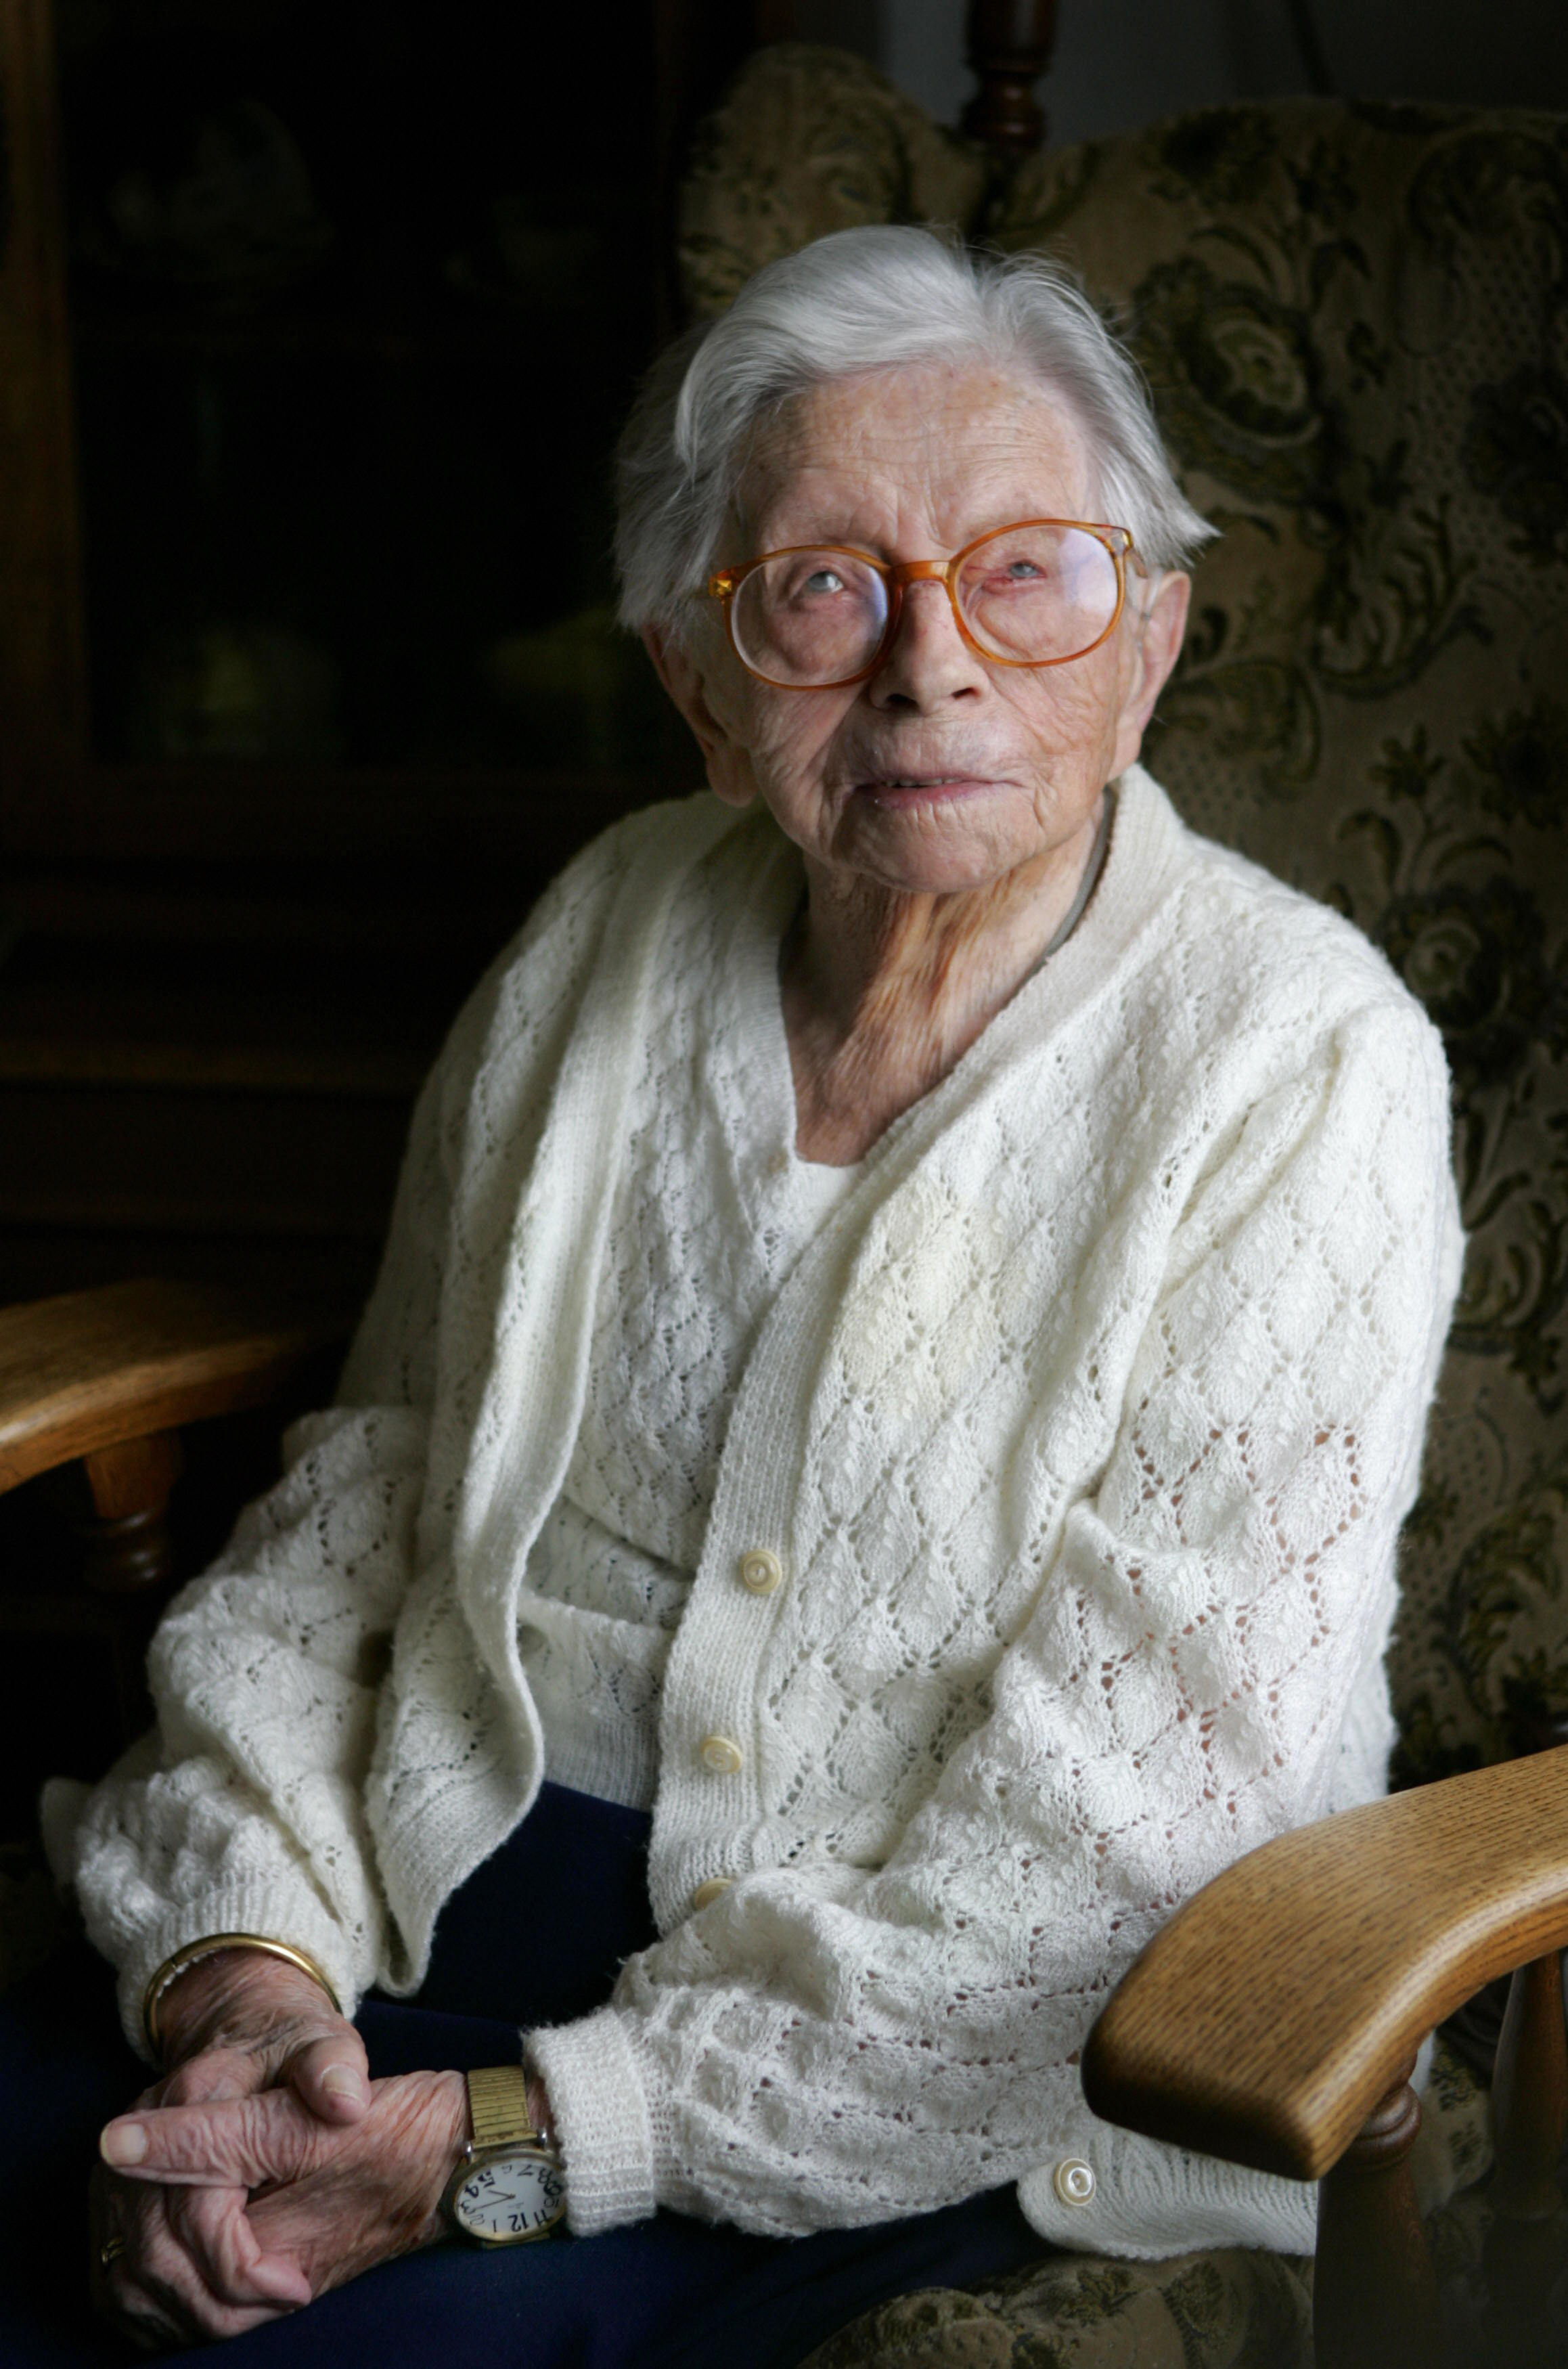 Blood Of World's Oldest Woman, Hendrikje van Andel-Schipper, Suggests Limits Of Mortality